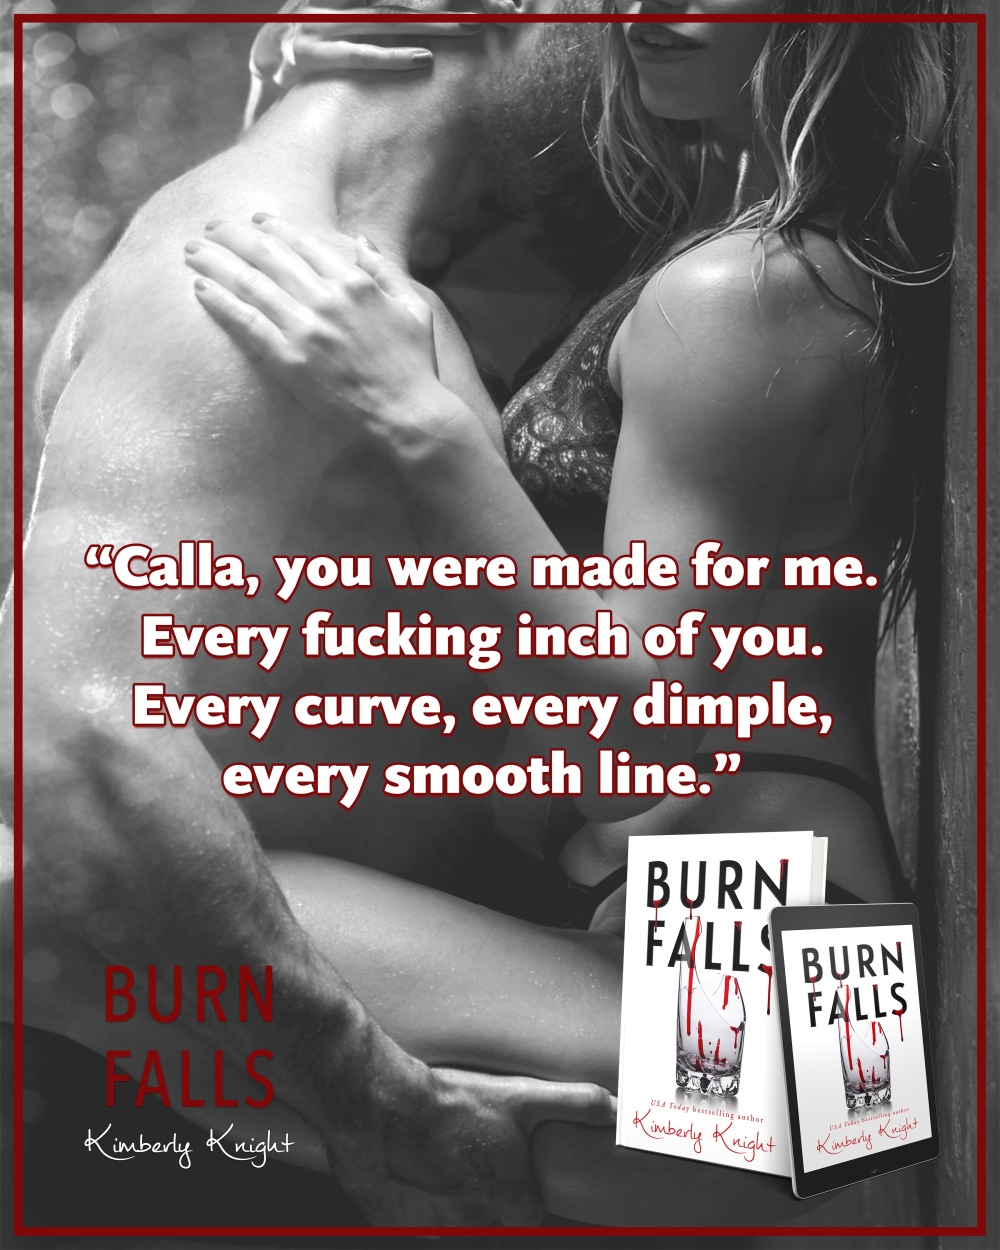 NEW RELEASE!!! BURN FALLS by Kimberly Knight – ginreads